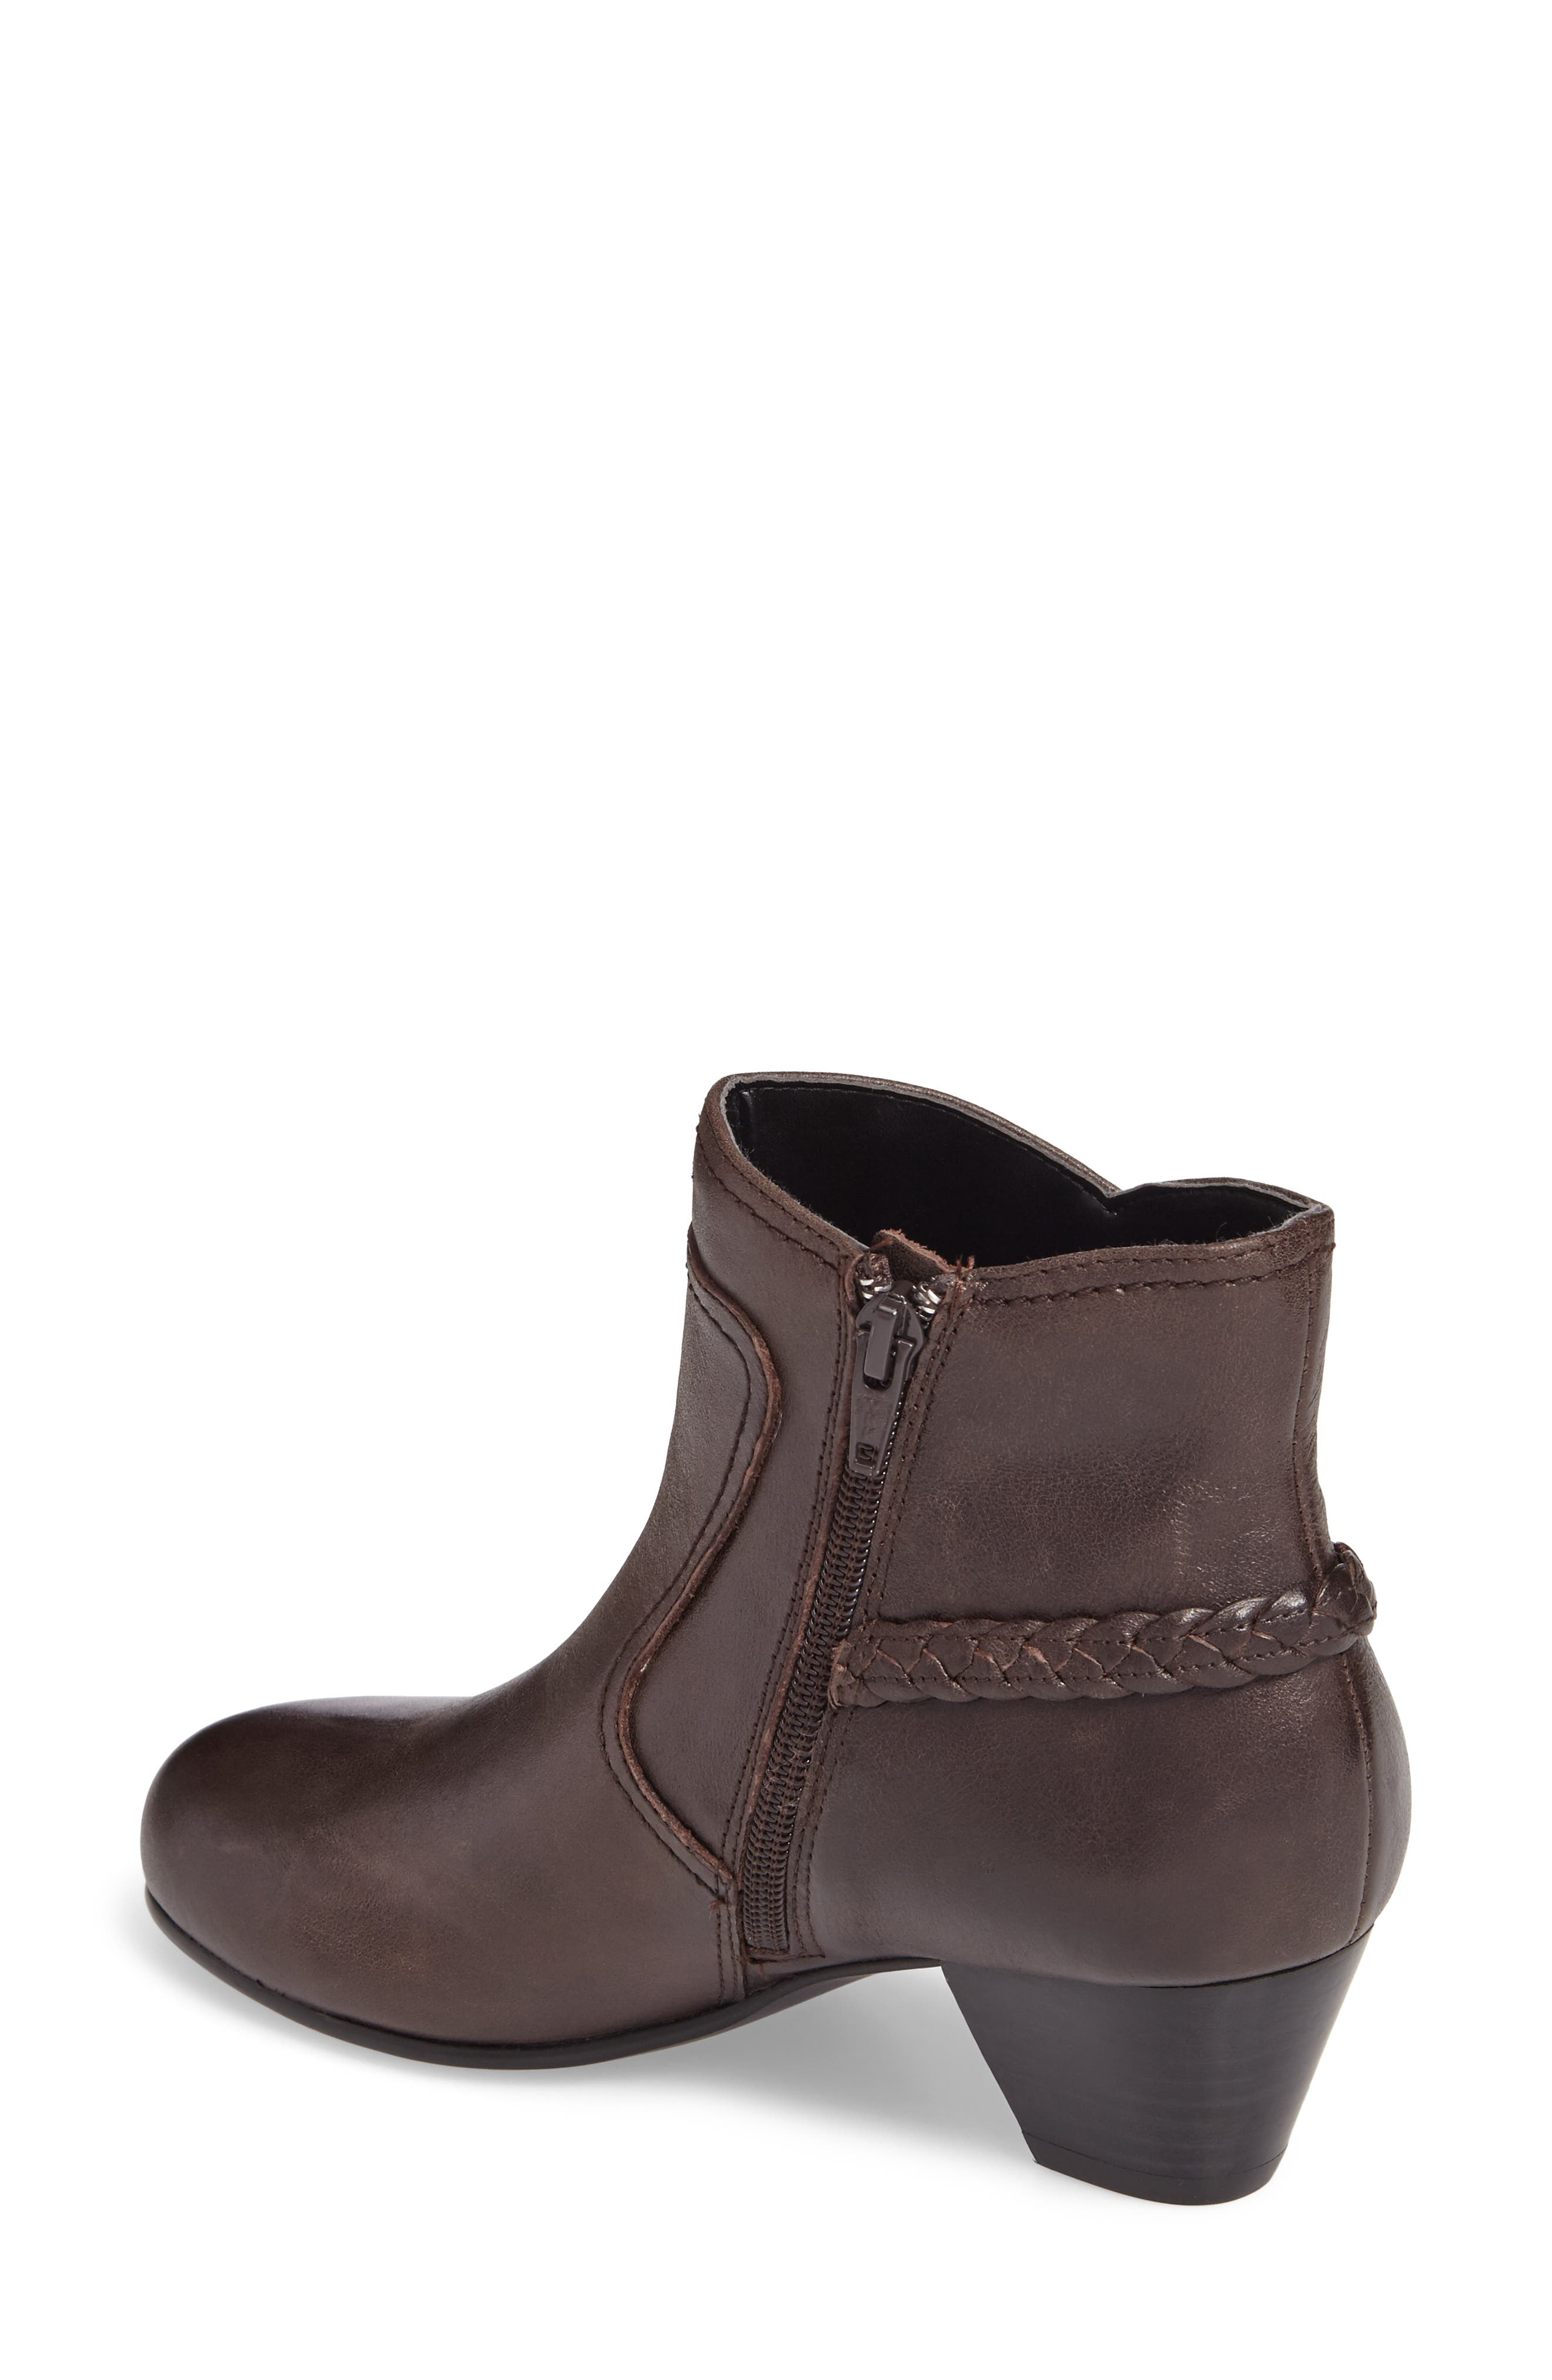 Chica Ankle Boot,                             Alternate thumbnail 4, color,